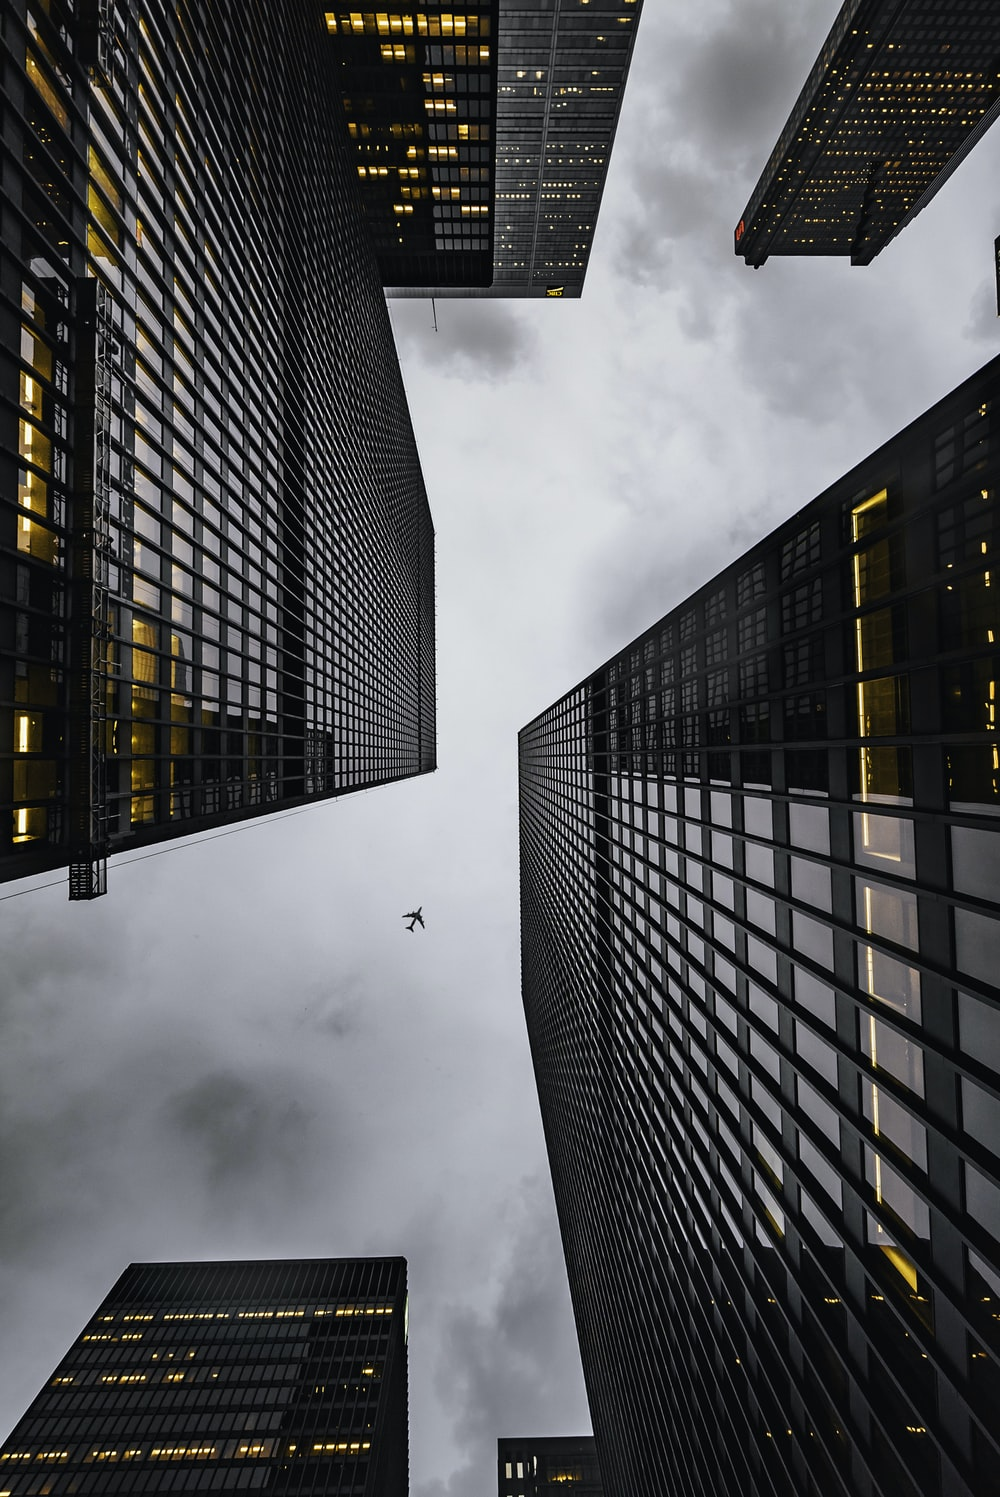 low angle photo of black high rise concrete city buildings